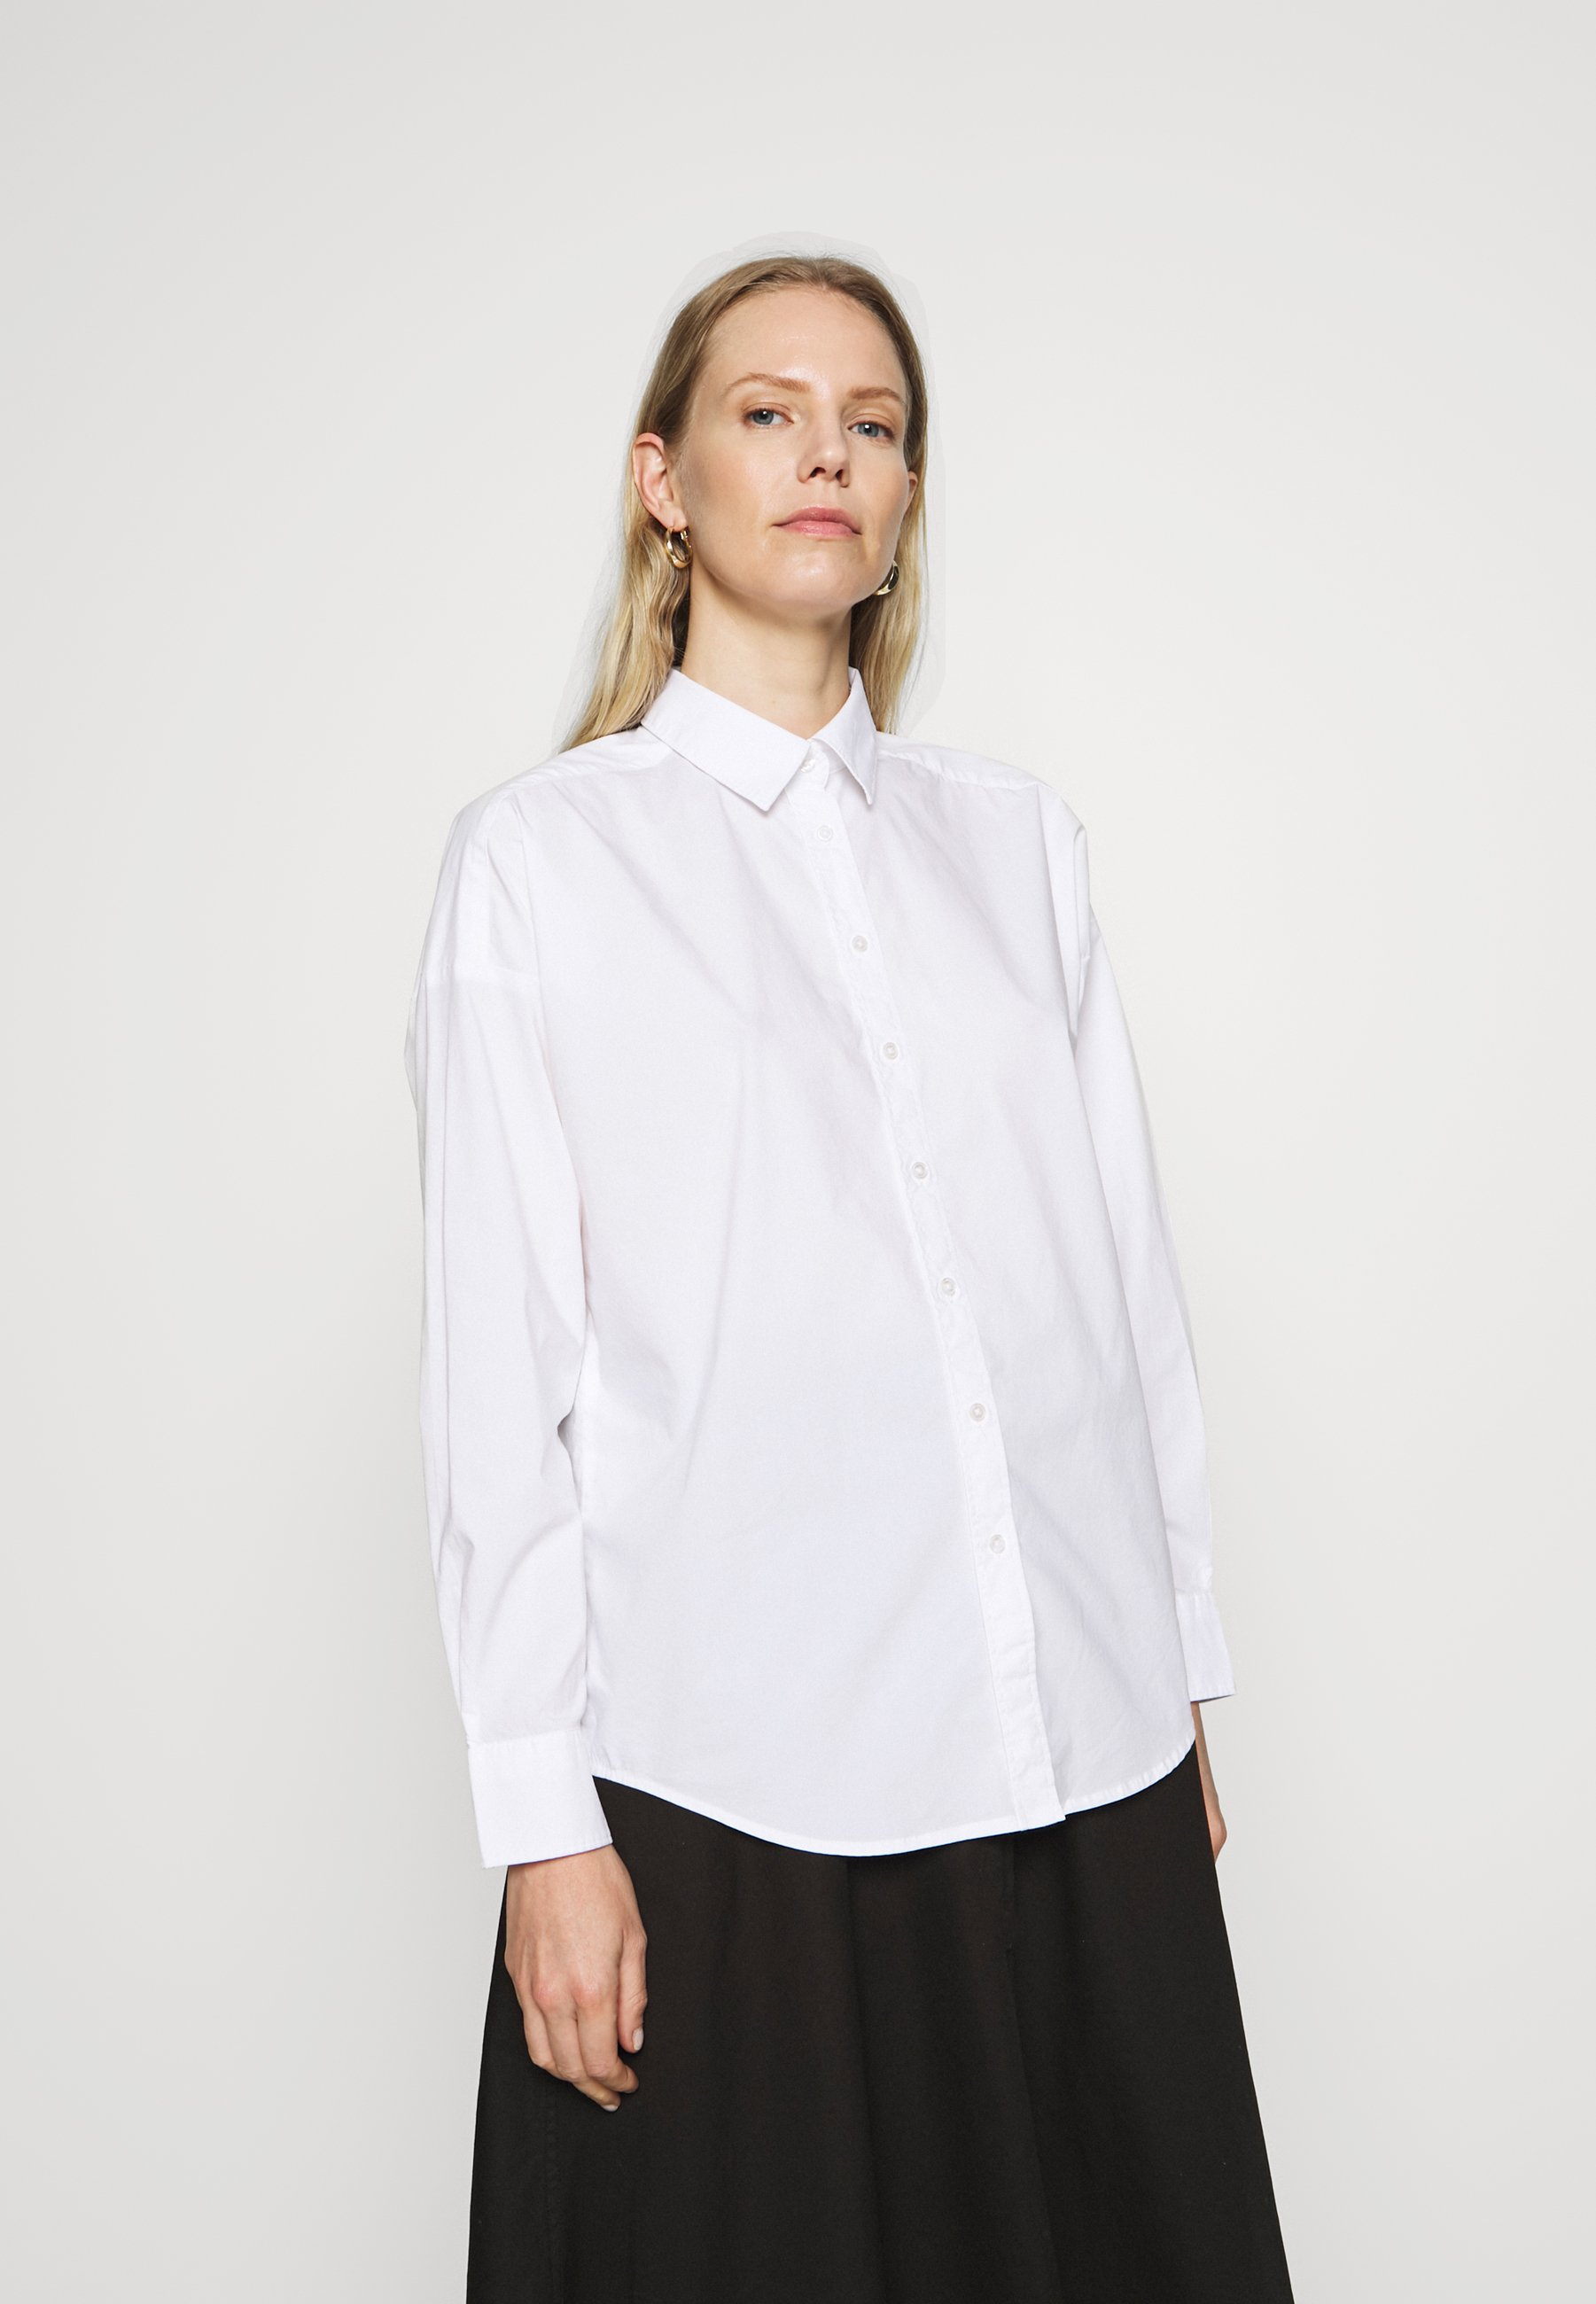 Huge Surprise Women's Clothing GANT OVERSIZED SOLID Button-down blouse white 27viLvkF4